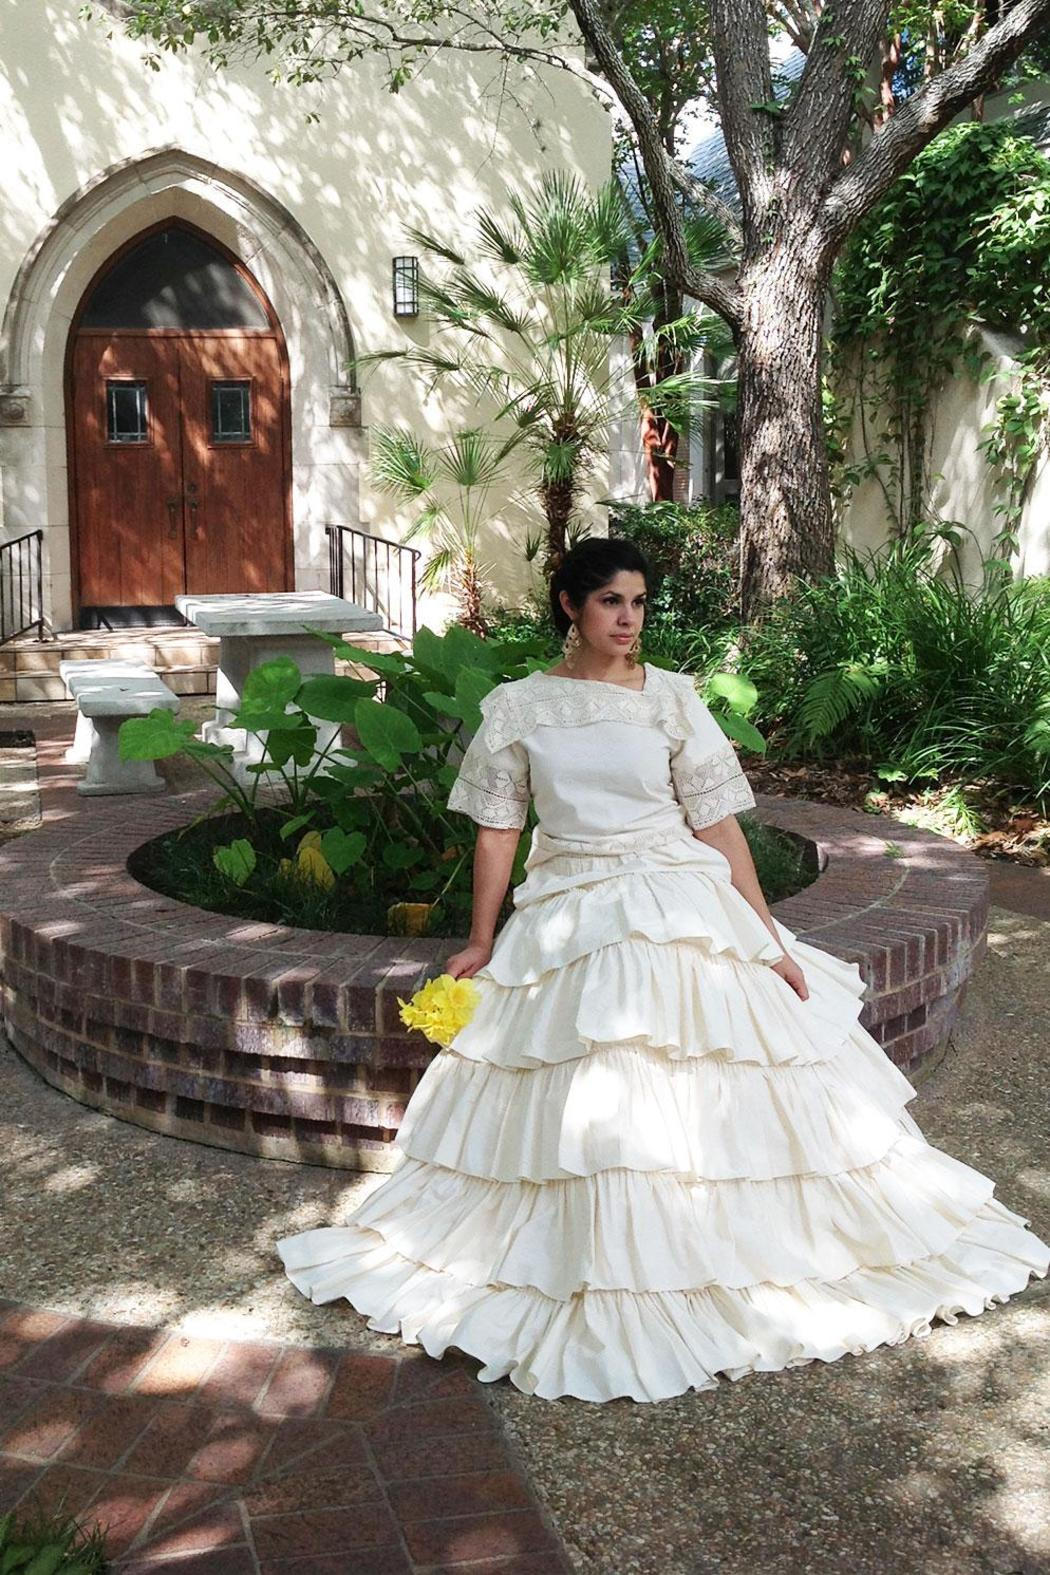 Mexican Wedding Dress.Nativa Mexican Wedding Dress From Texas Shoptiques